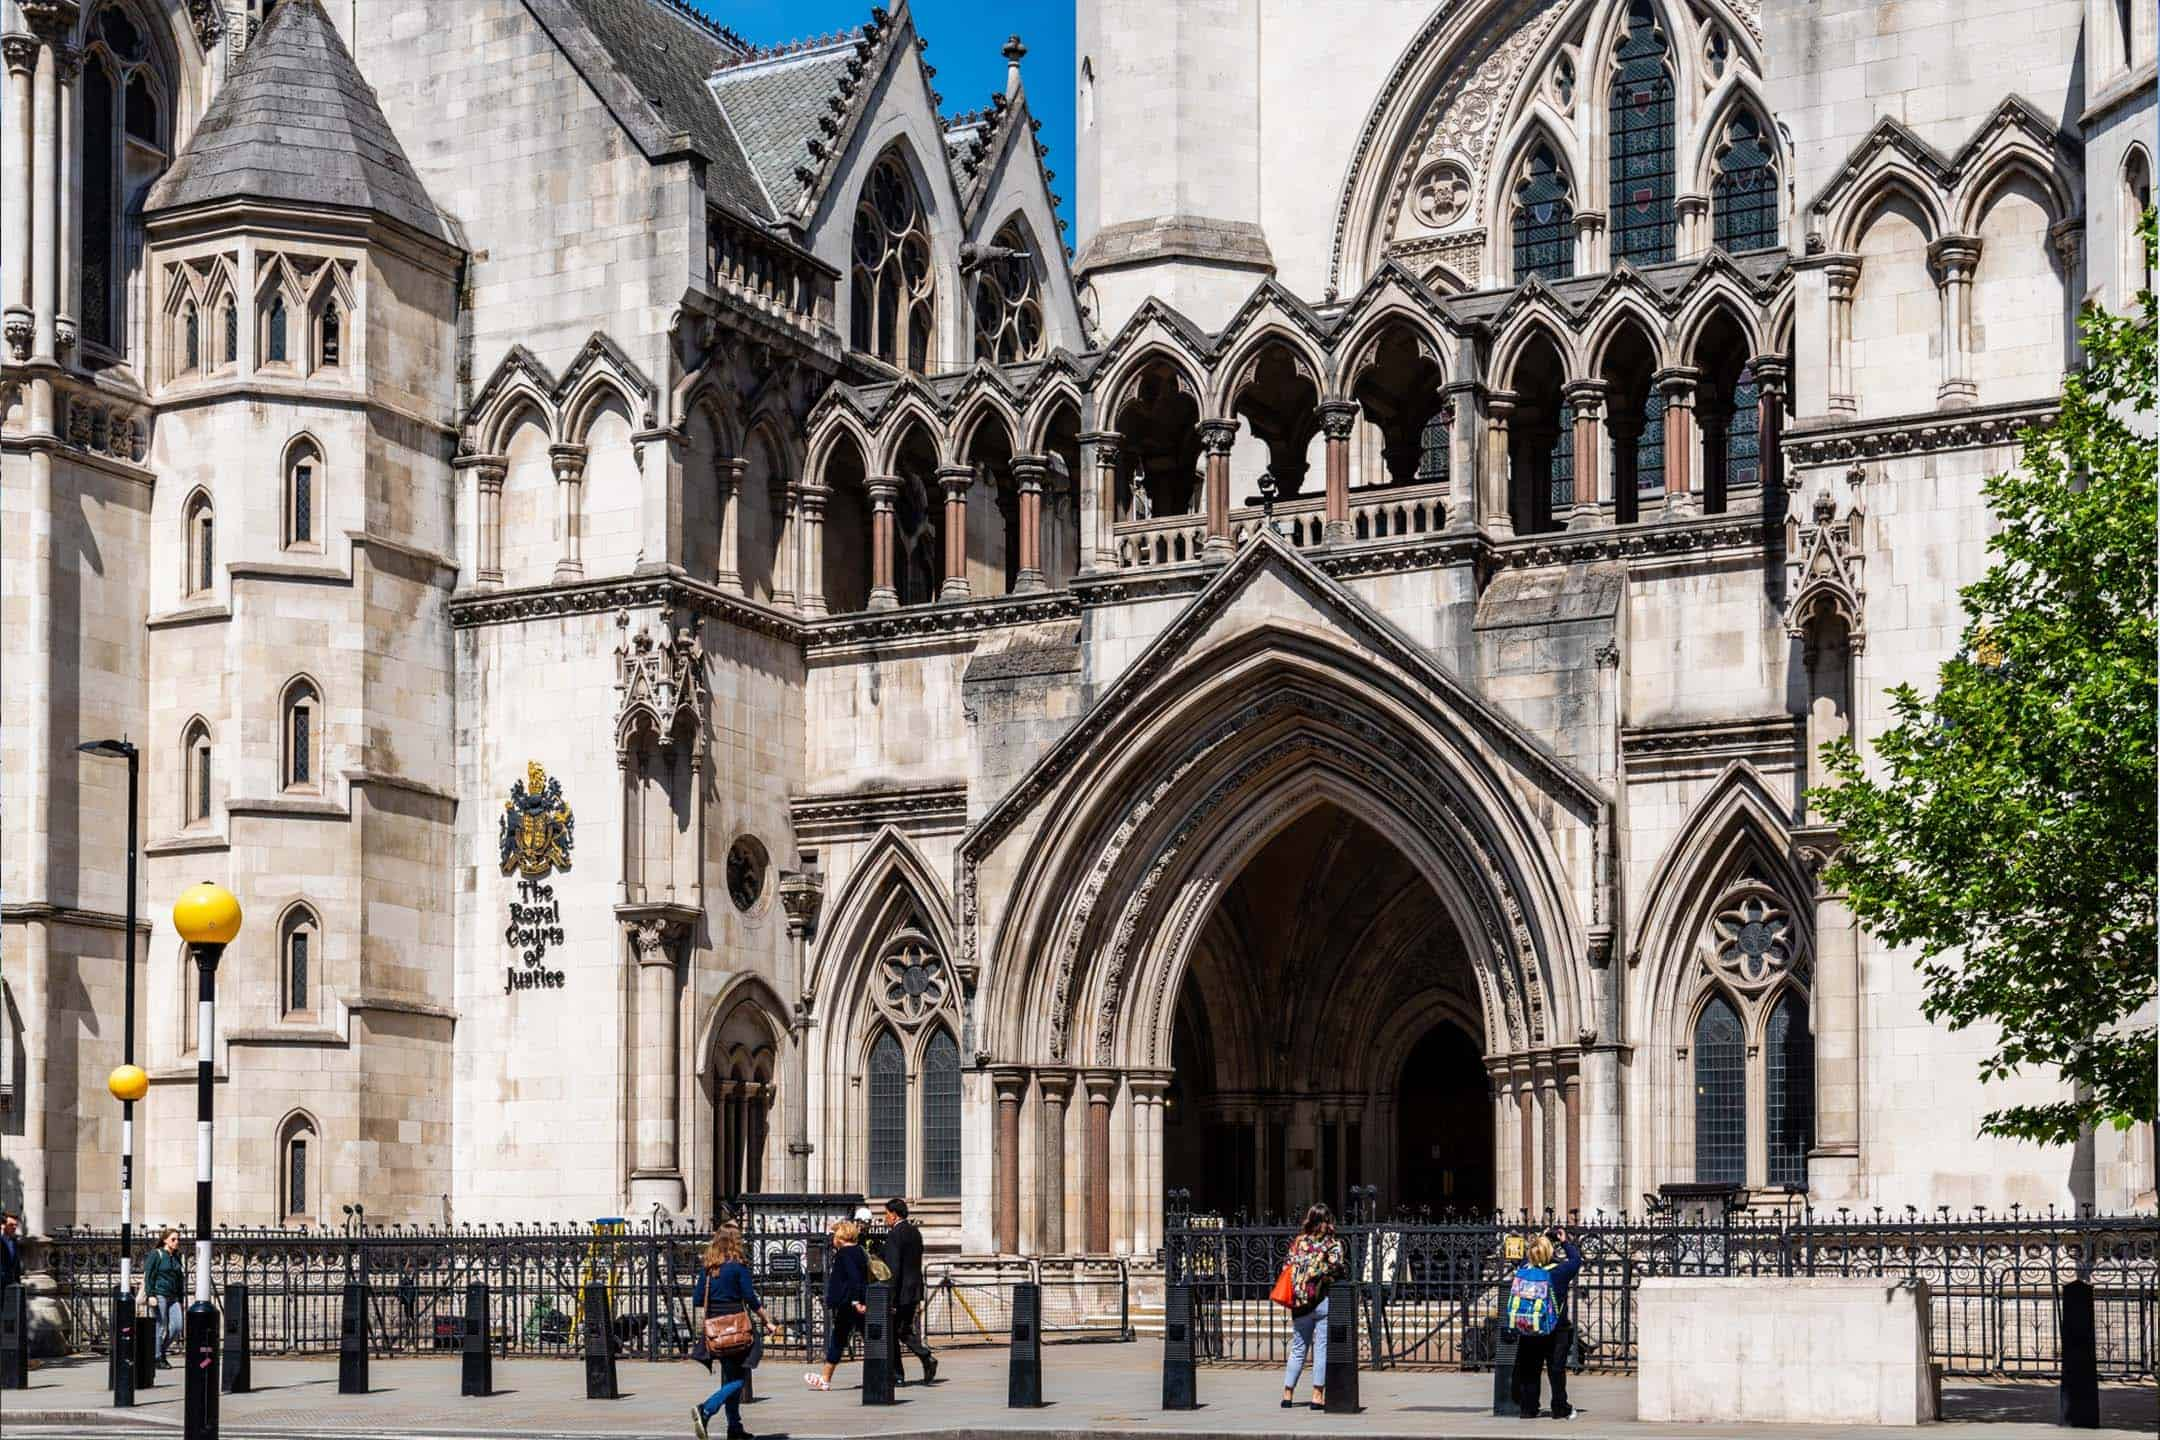 extradition order appeal Solicitors London